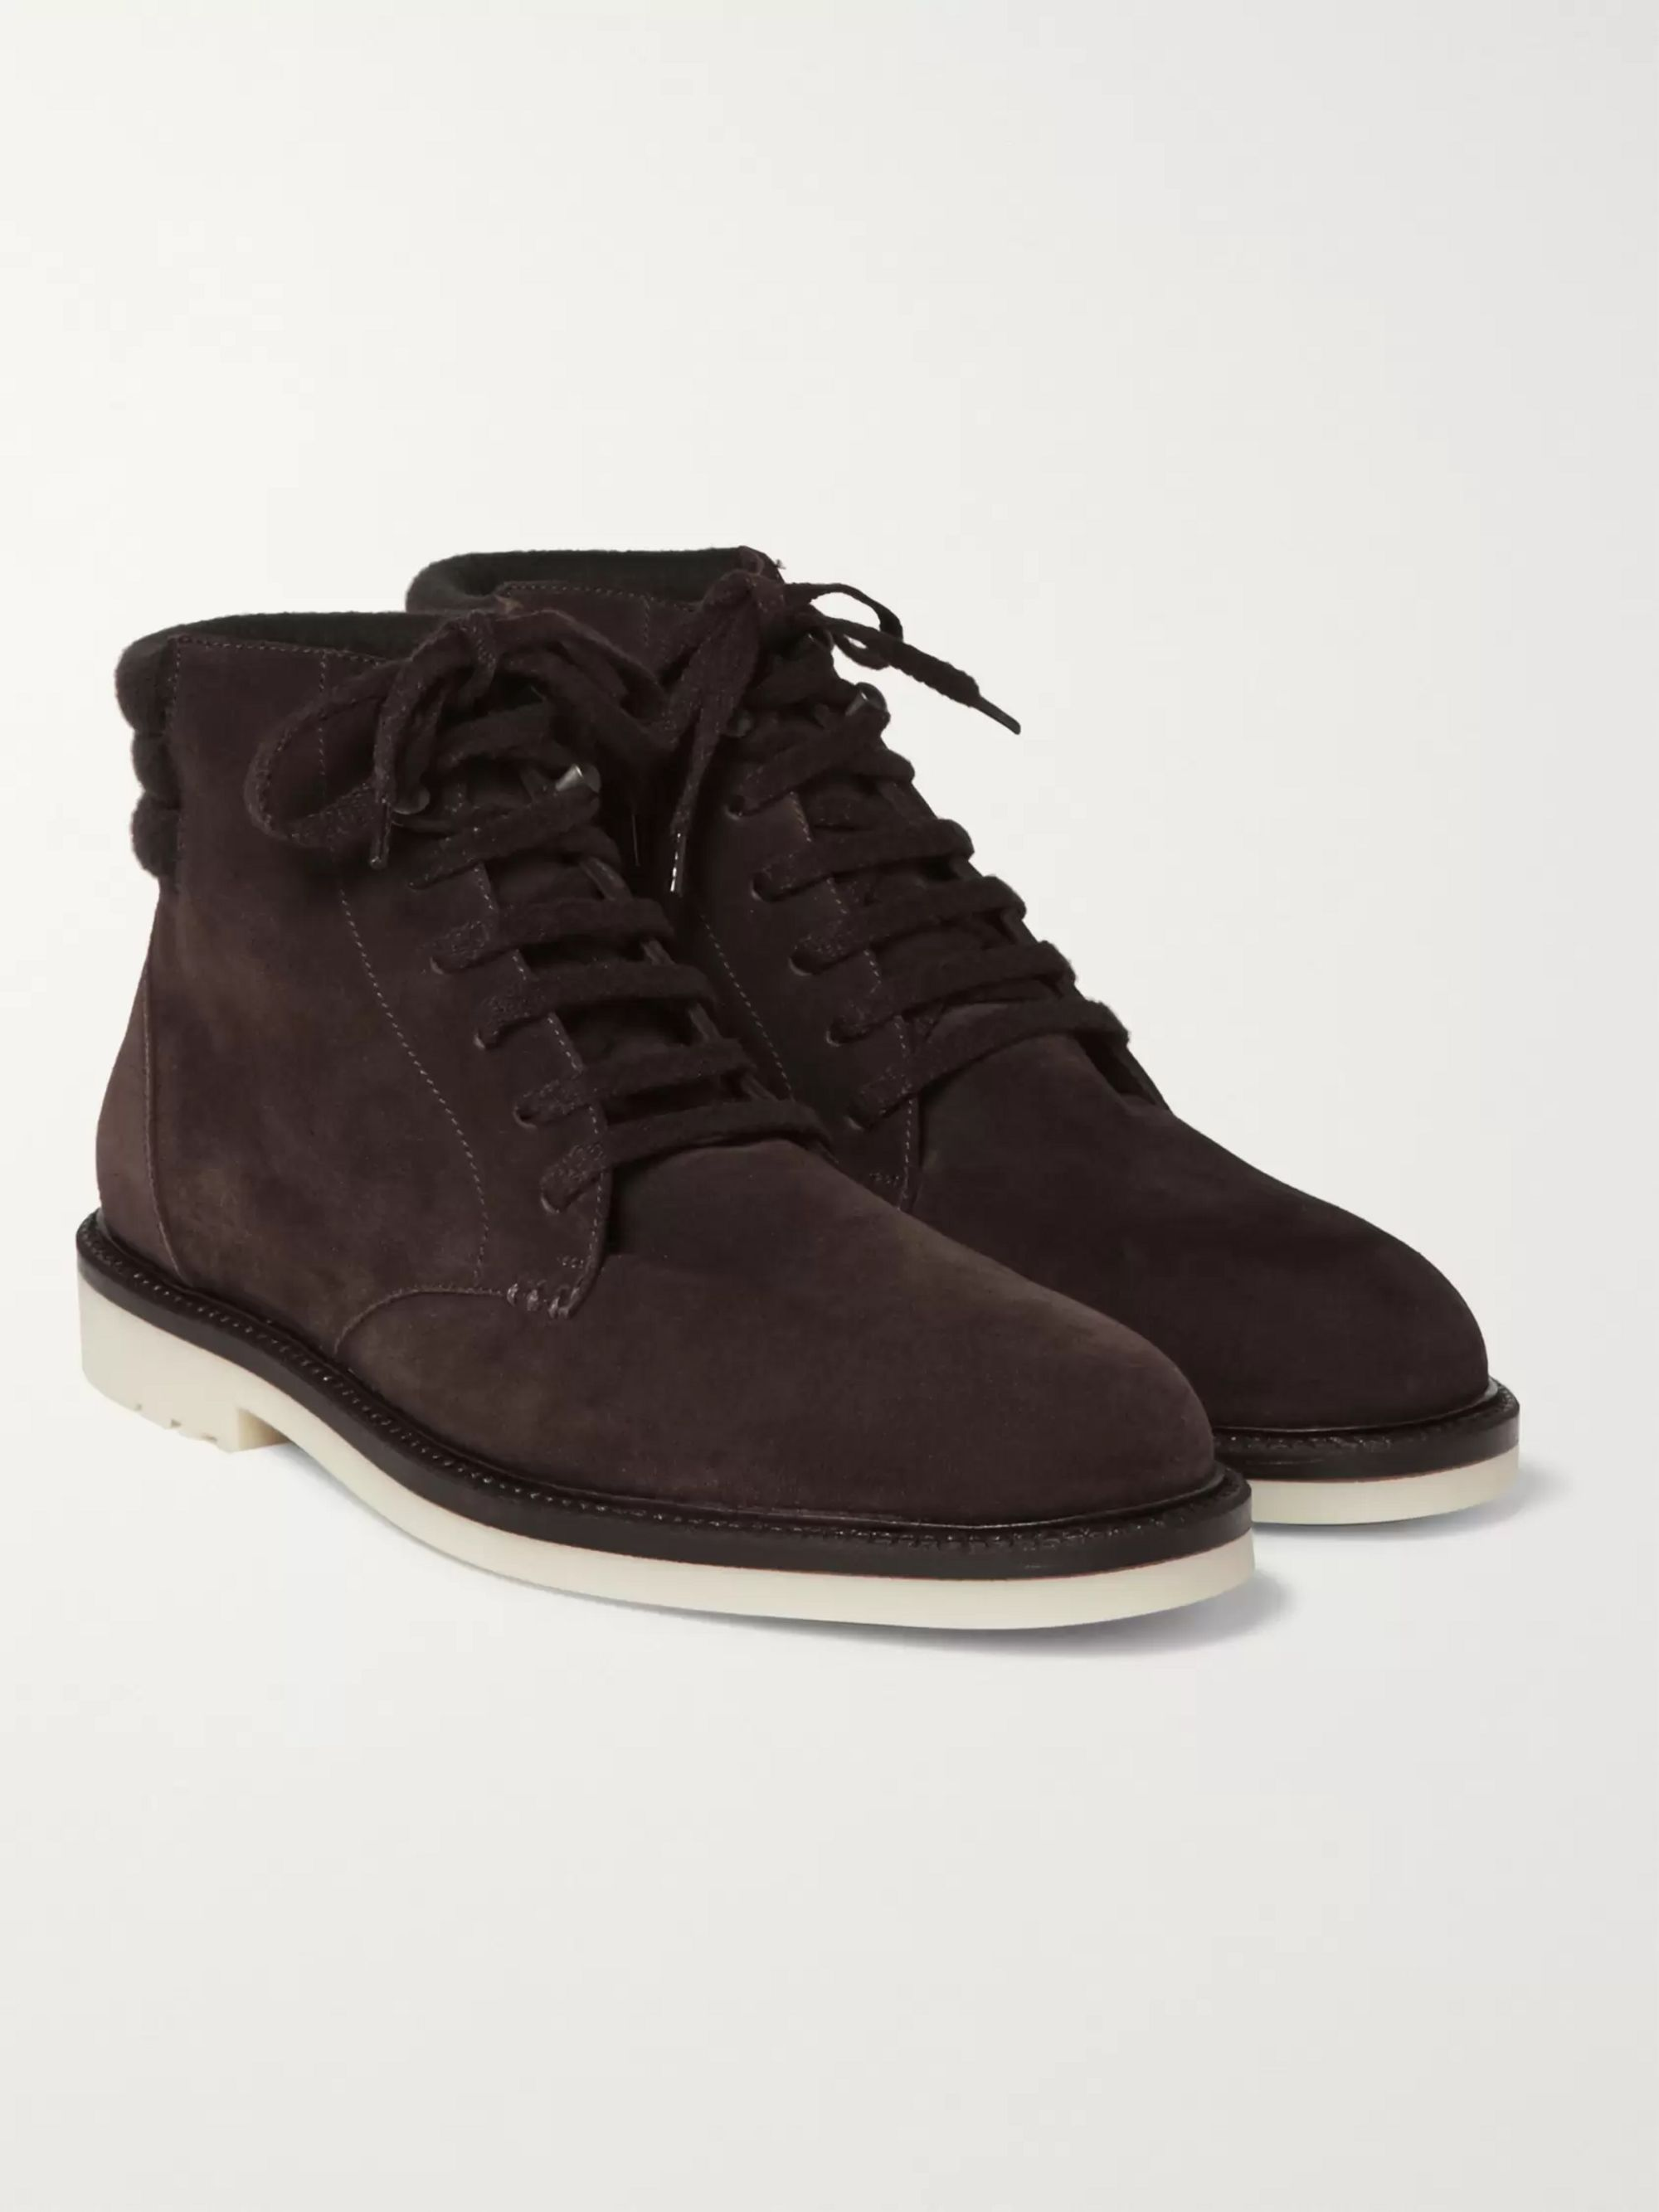 Loro Piana Icer Walk Cashmere-Lined Water-Repellent Suede Boots